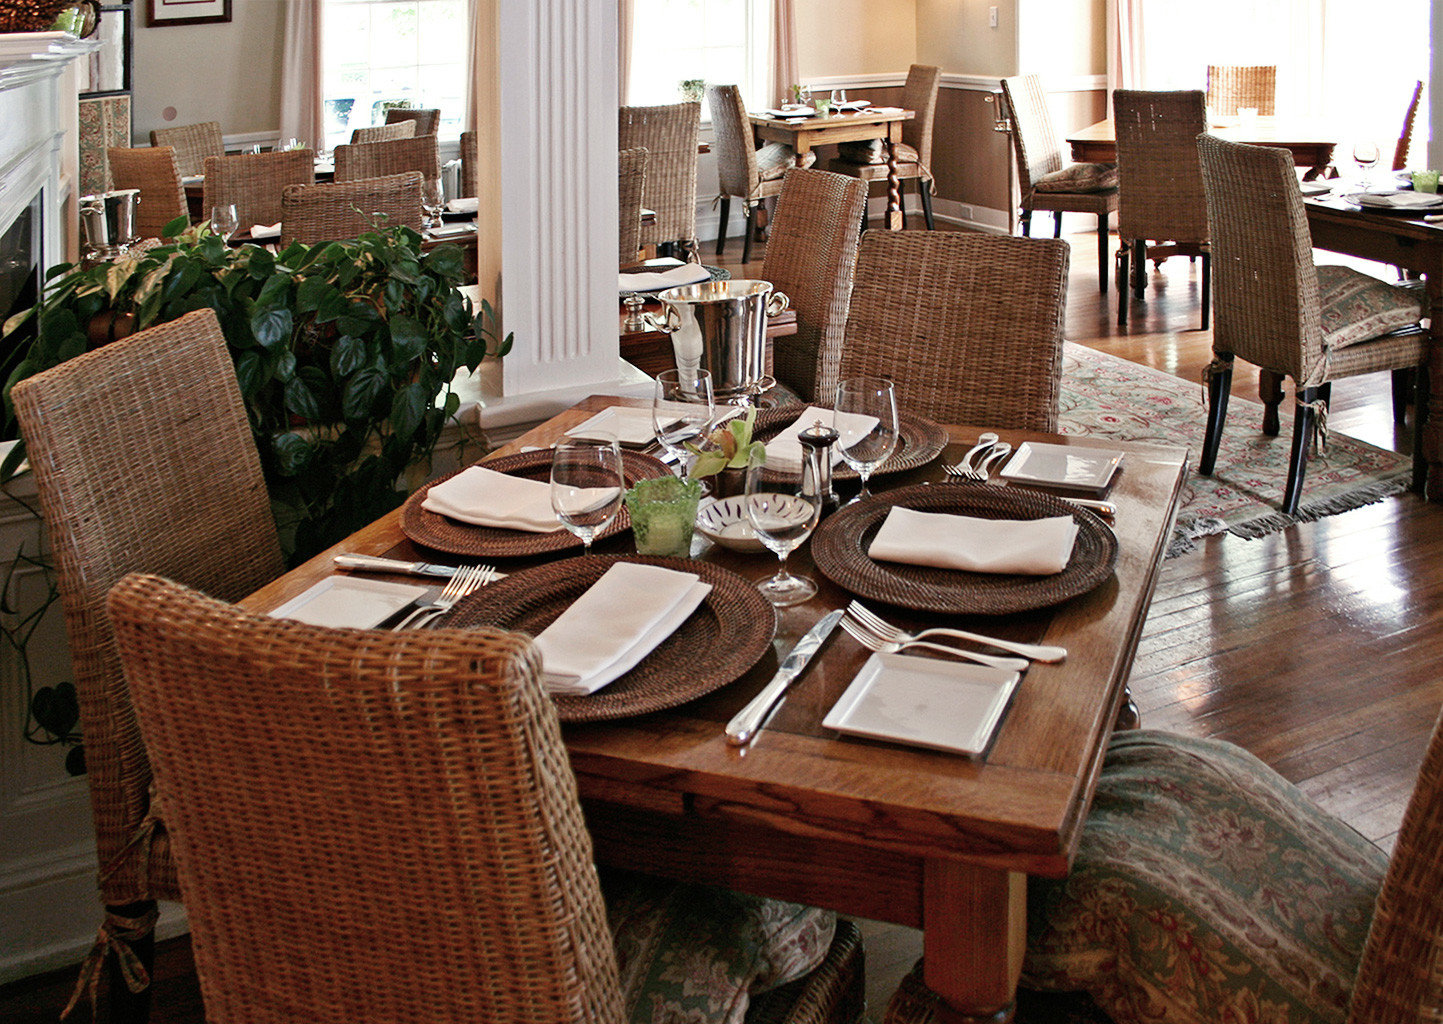 Beach Boutique Dining Eat Inn Romance Romantic chair property restaurant living room home Lobby cottage dining table